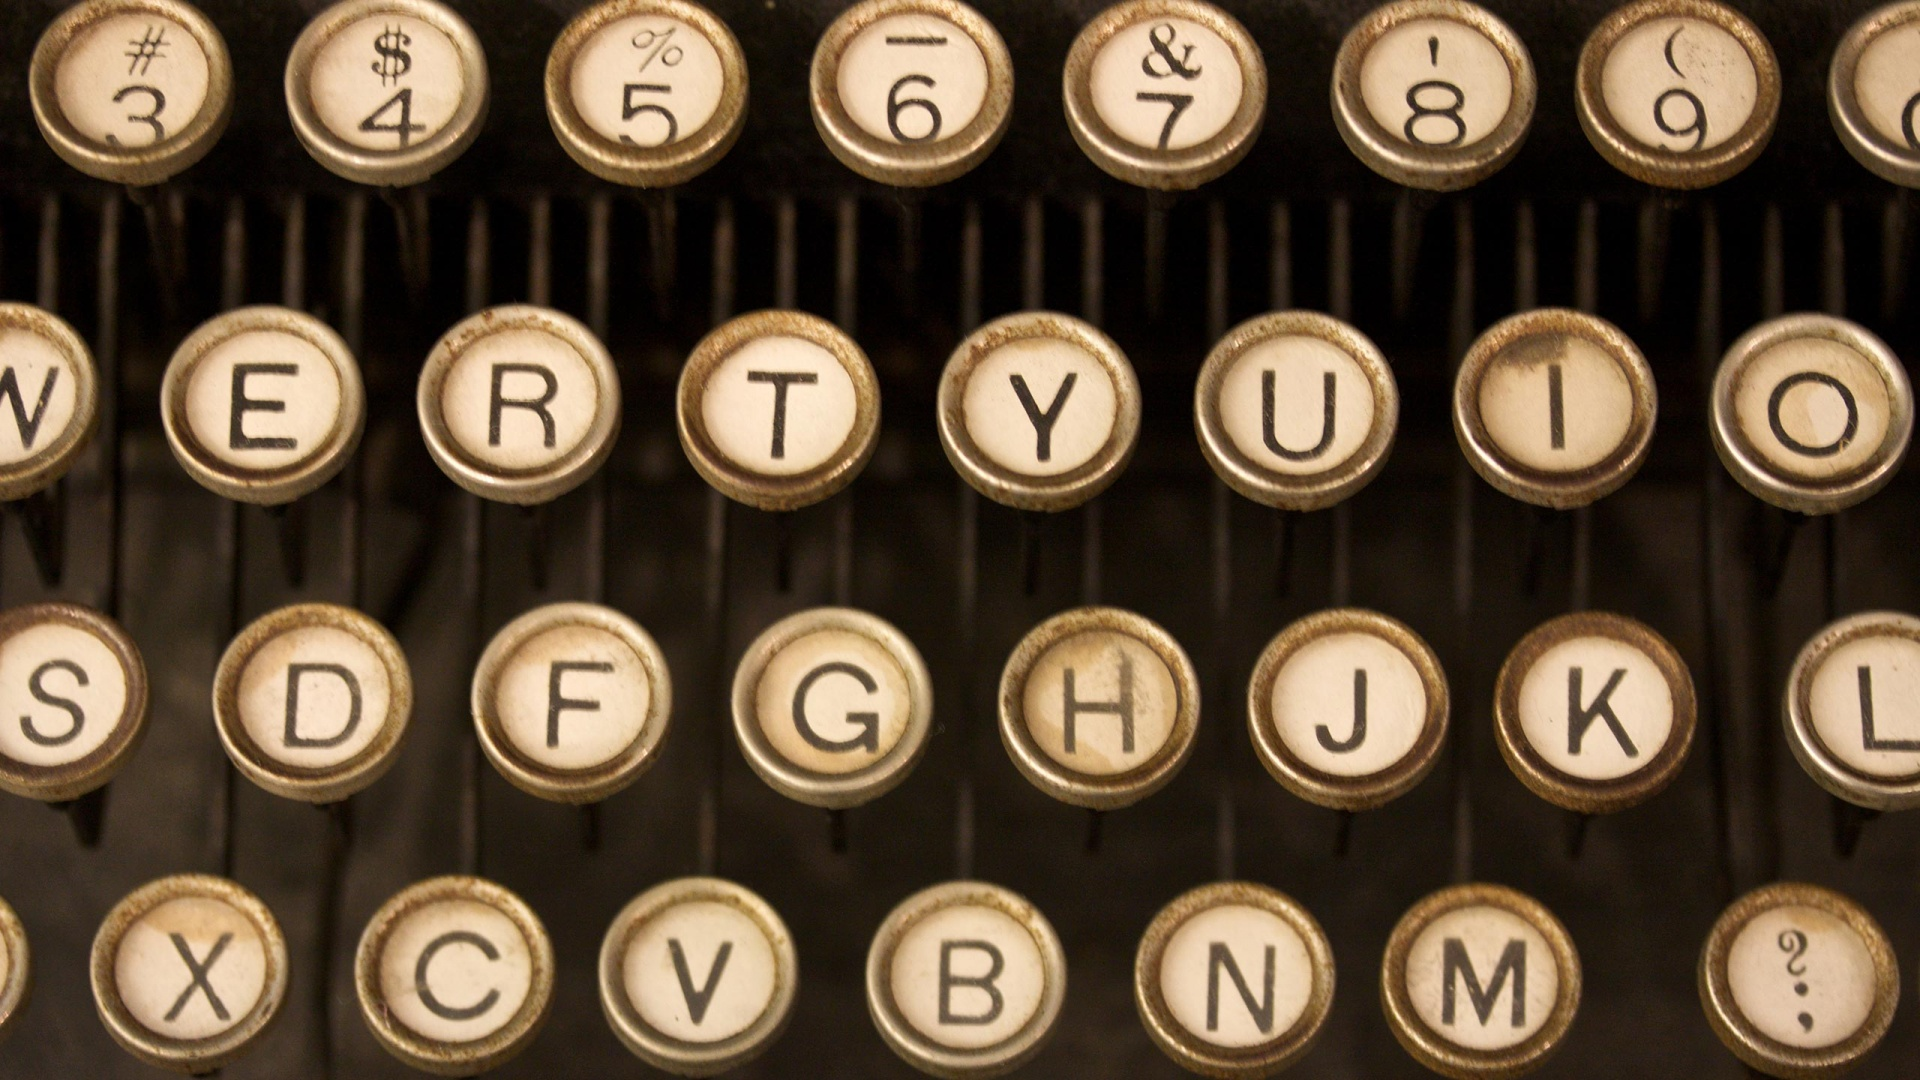 Typewriter Letters Wallpapers Images Hd